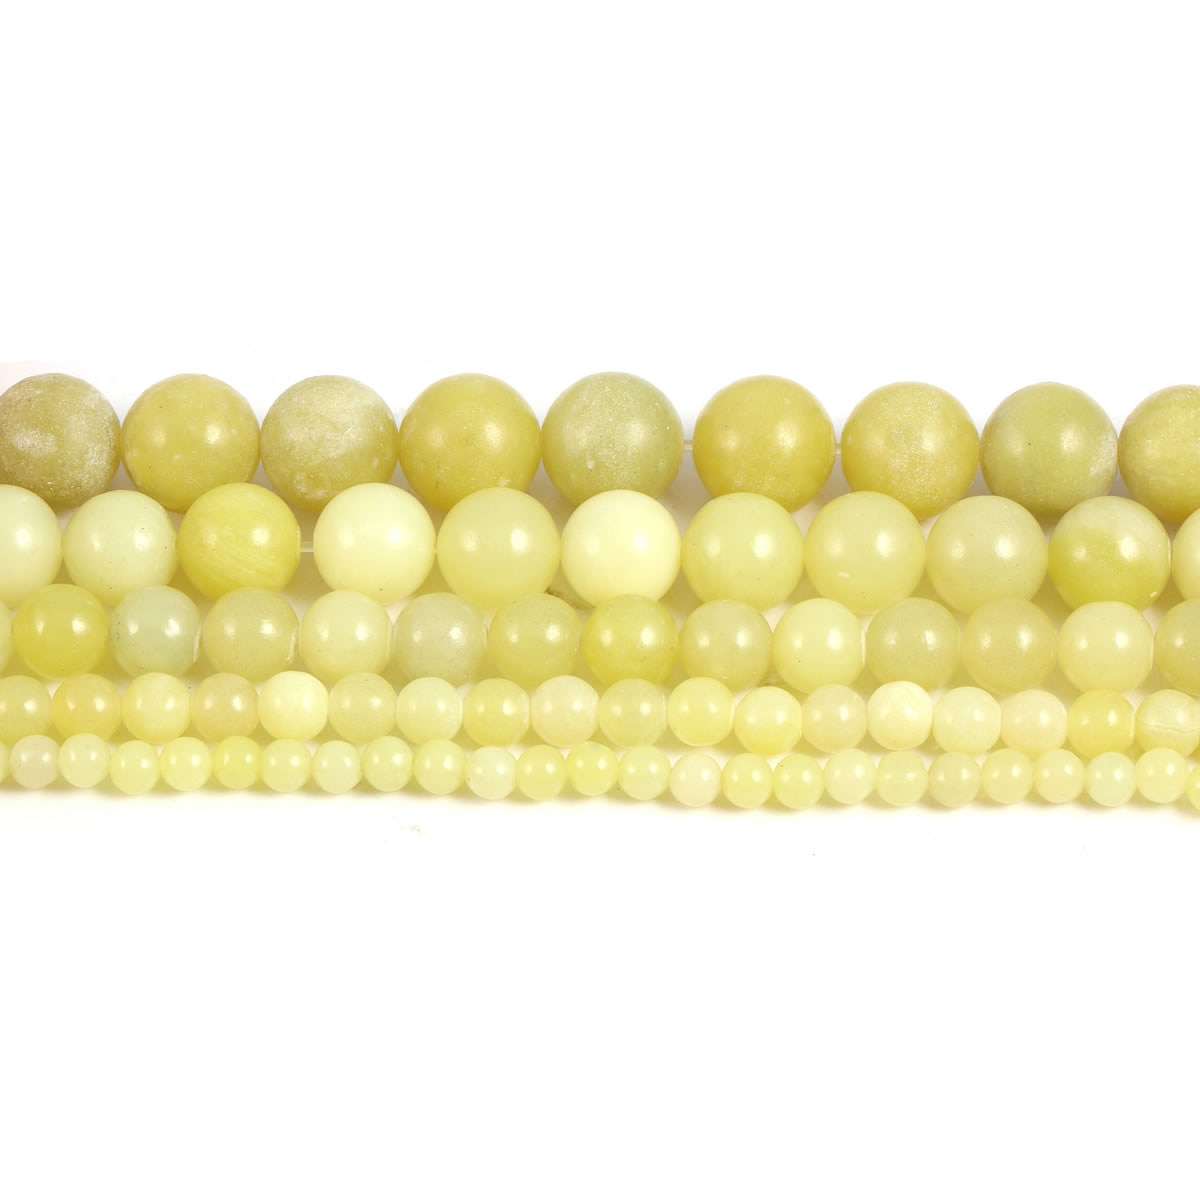 4 6 8 10 12mm Natural Stone Lemon Jaspers Beads Round Loose Spacer Beads for DIY Necklace Bracelet Making Jewelry Accessories  - buy with discount